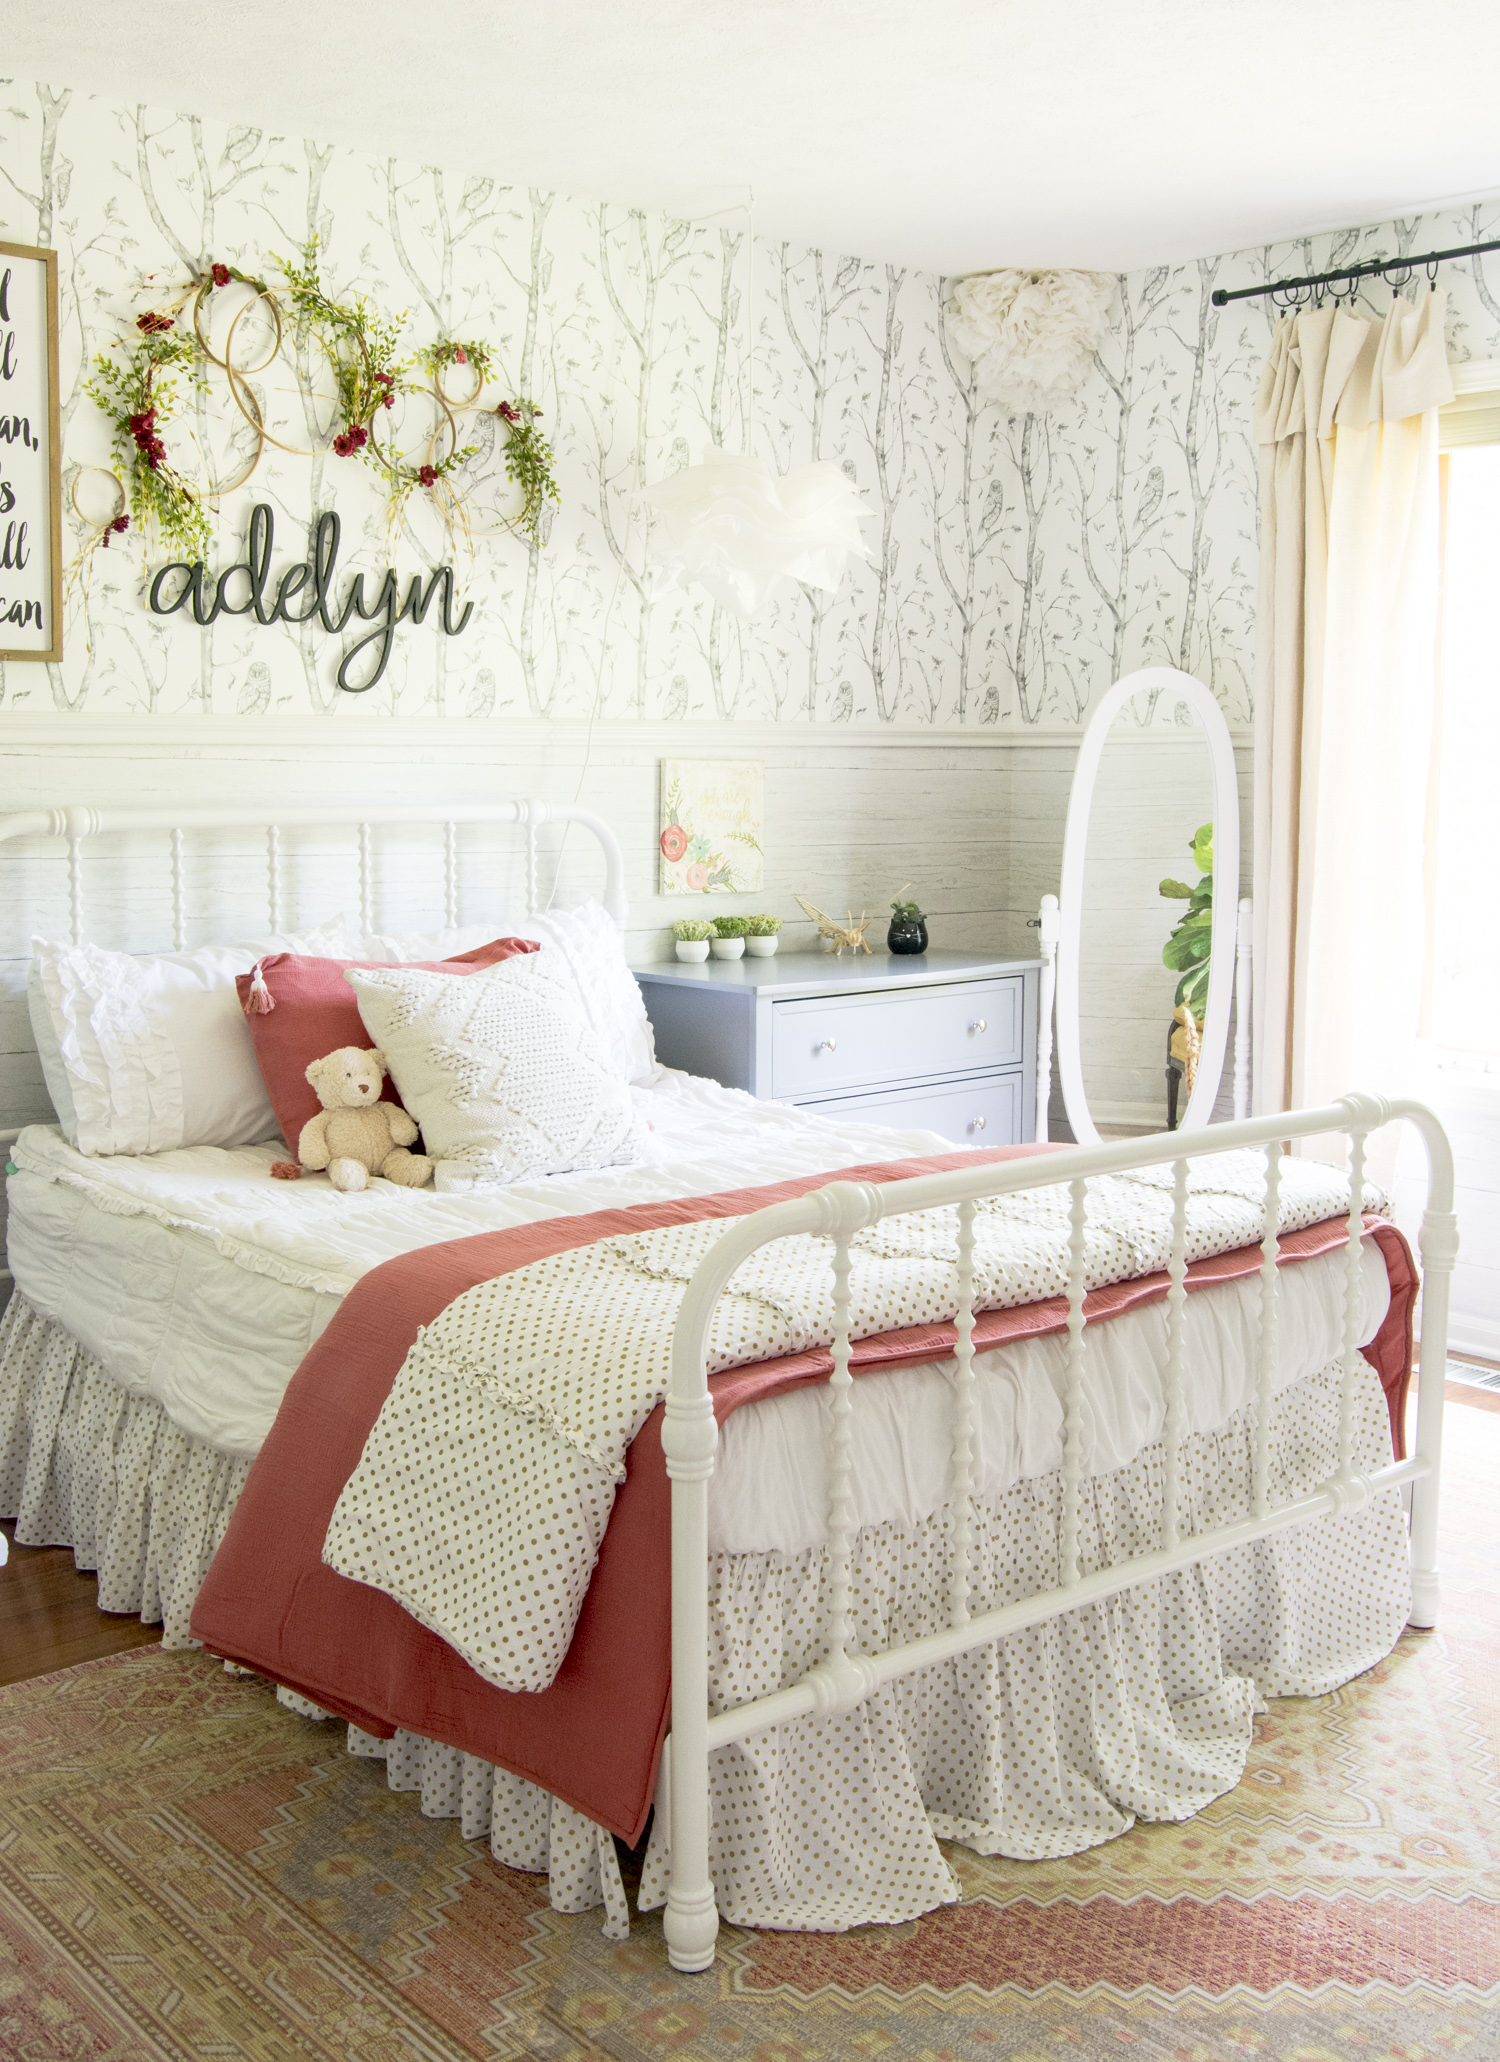 How cute is this girls bedroom with tree and owl wallpaper kellyelko.com #girlsroom #kidsroom #kidsbedroom #bedroom #wallpaper #bedroomdecor #farmhousedecor